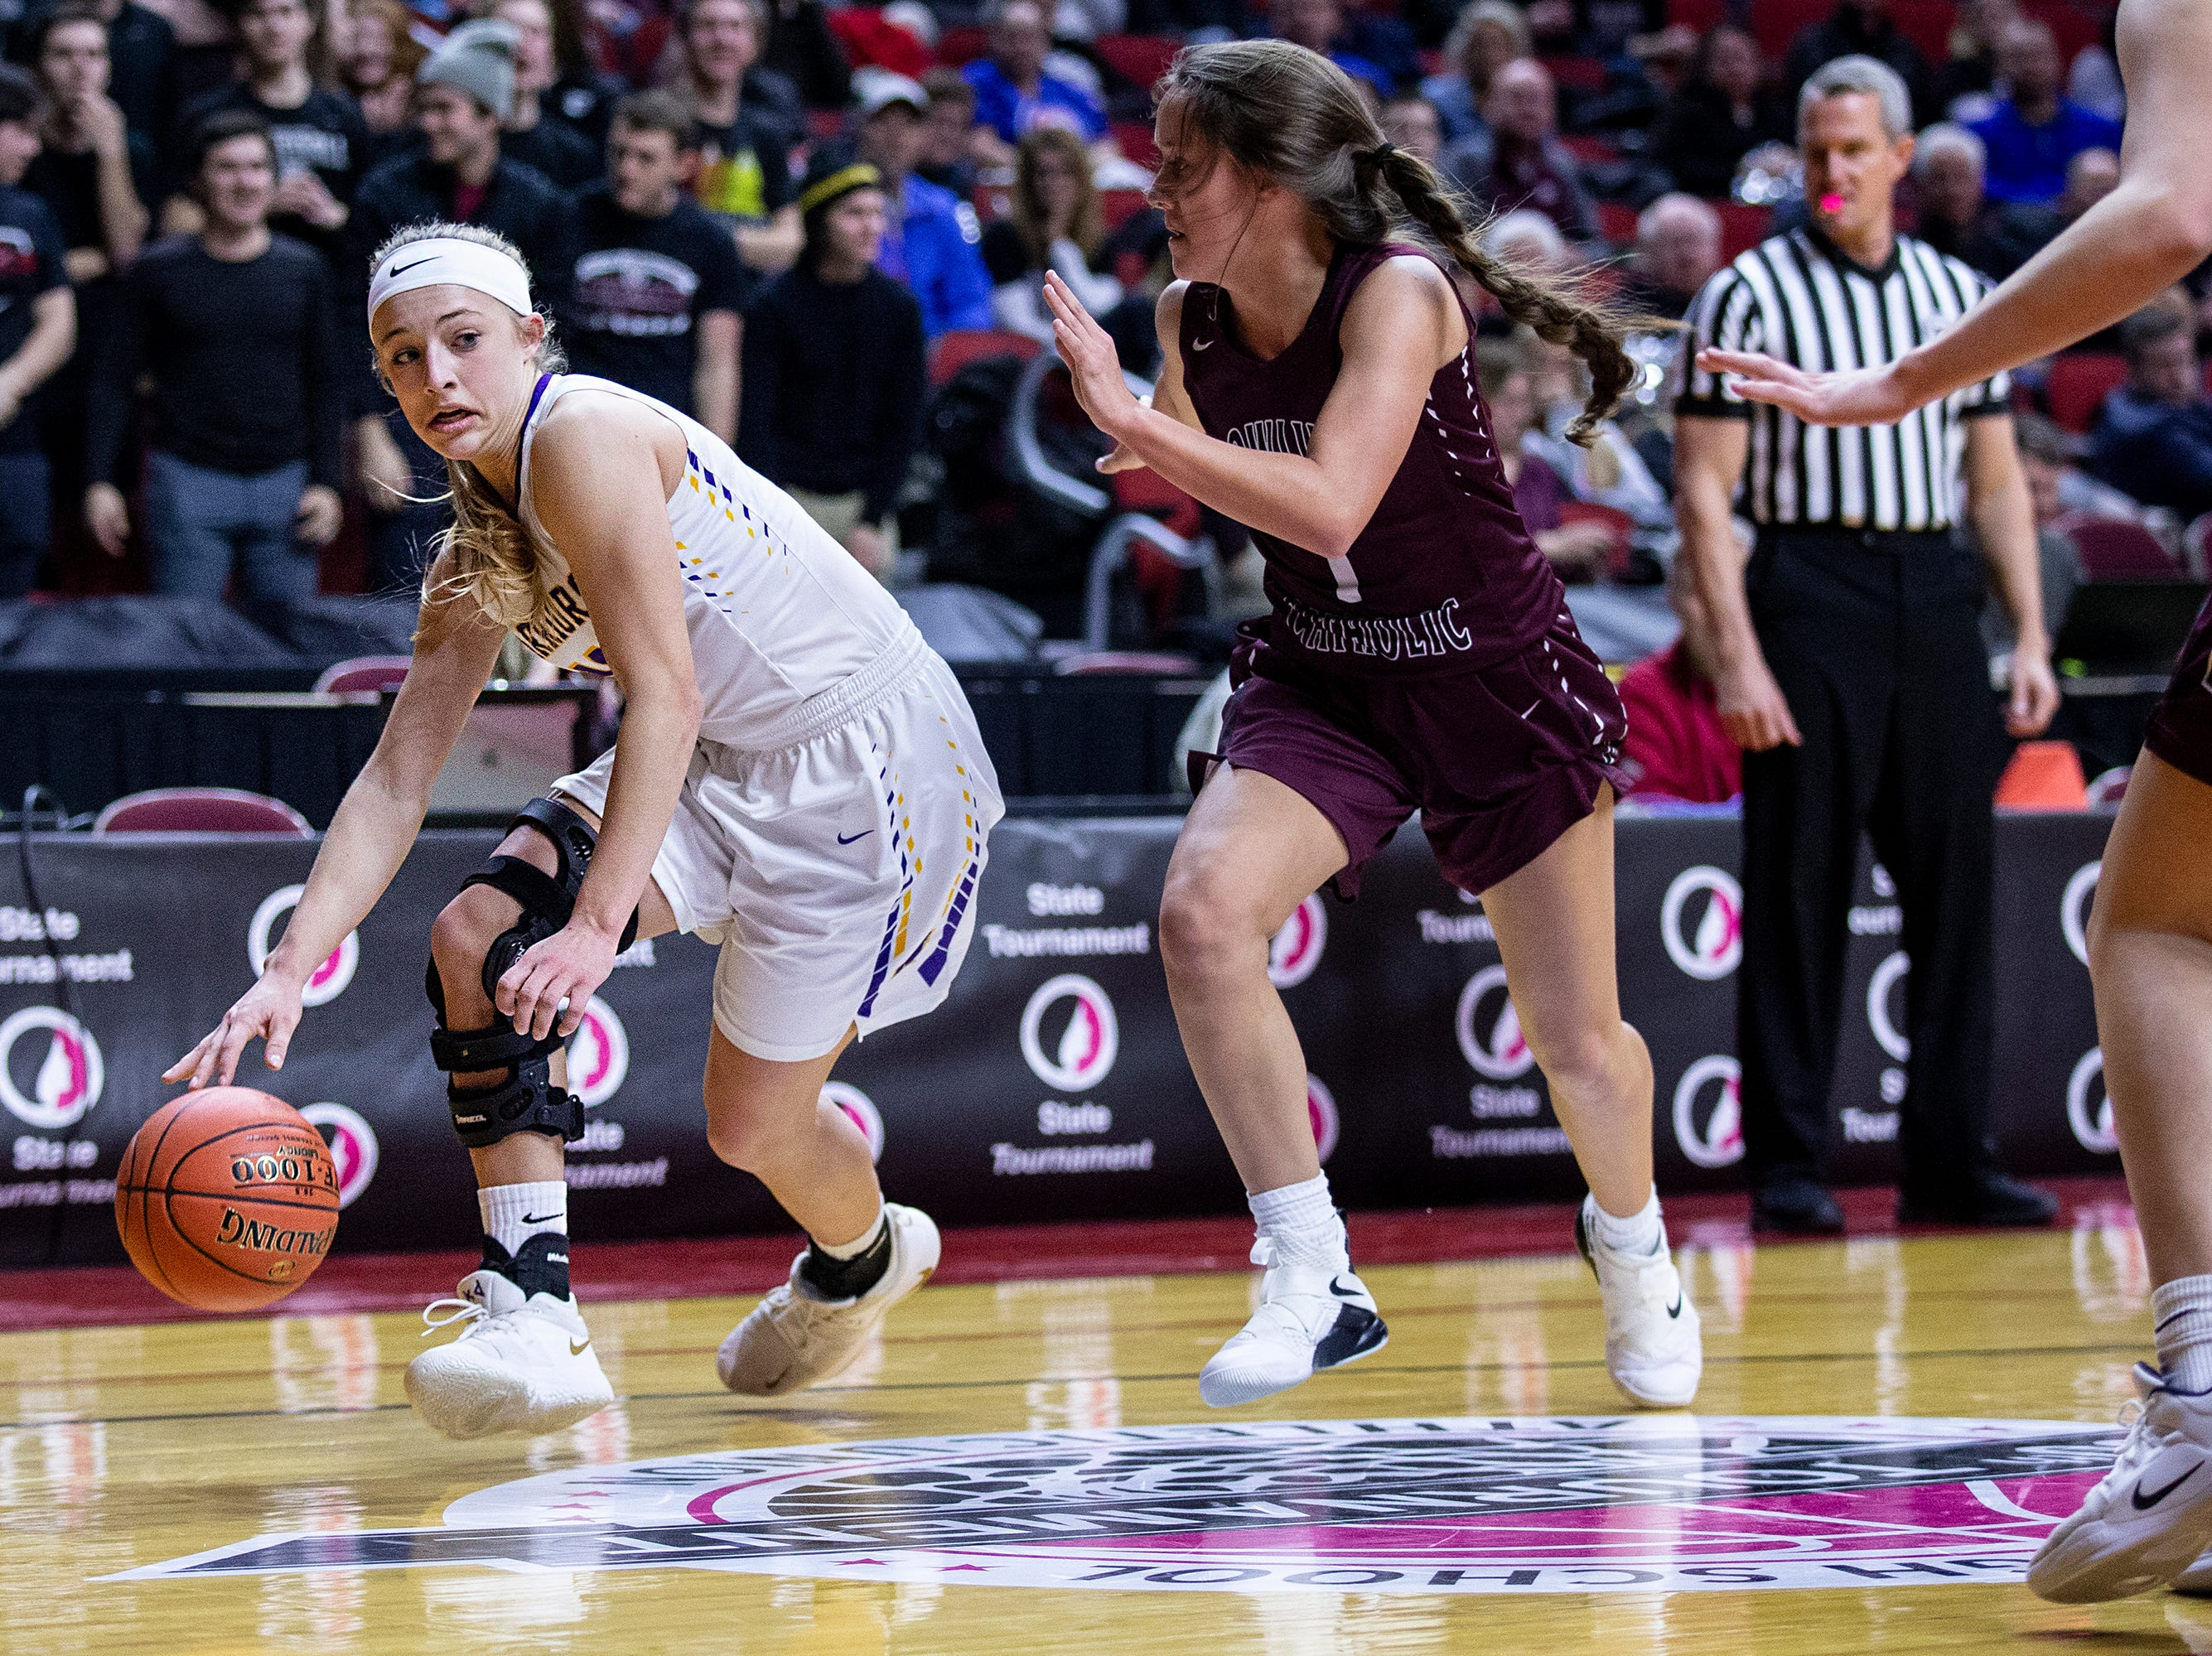 Waukee's Katie Dinnebier looks for a teammate to pass to during the Class 5A Iowa girls' state basketball tournament quarterfinal between Dowling Catholic and Waukee on Monday, Feb. 25, 2019, in Wells Fargo Arena.